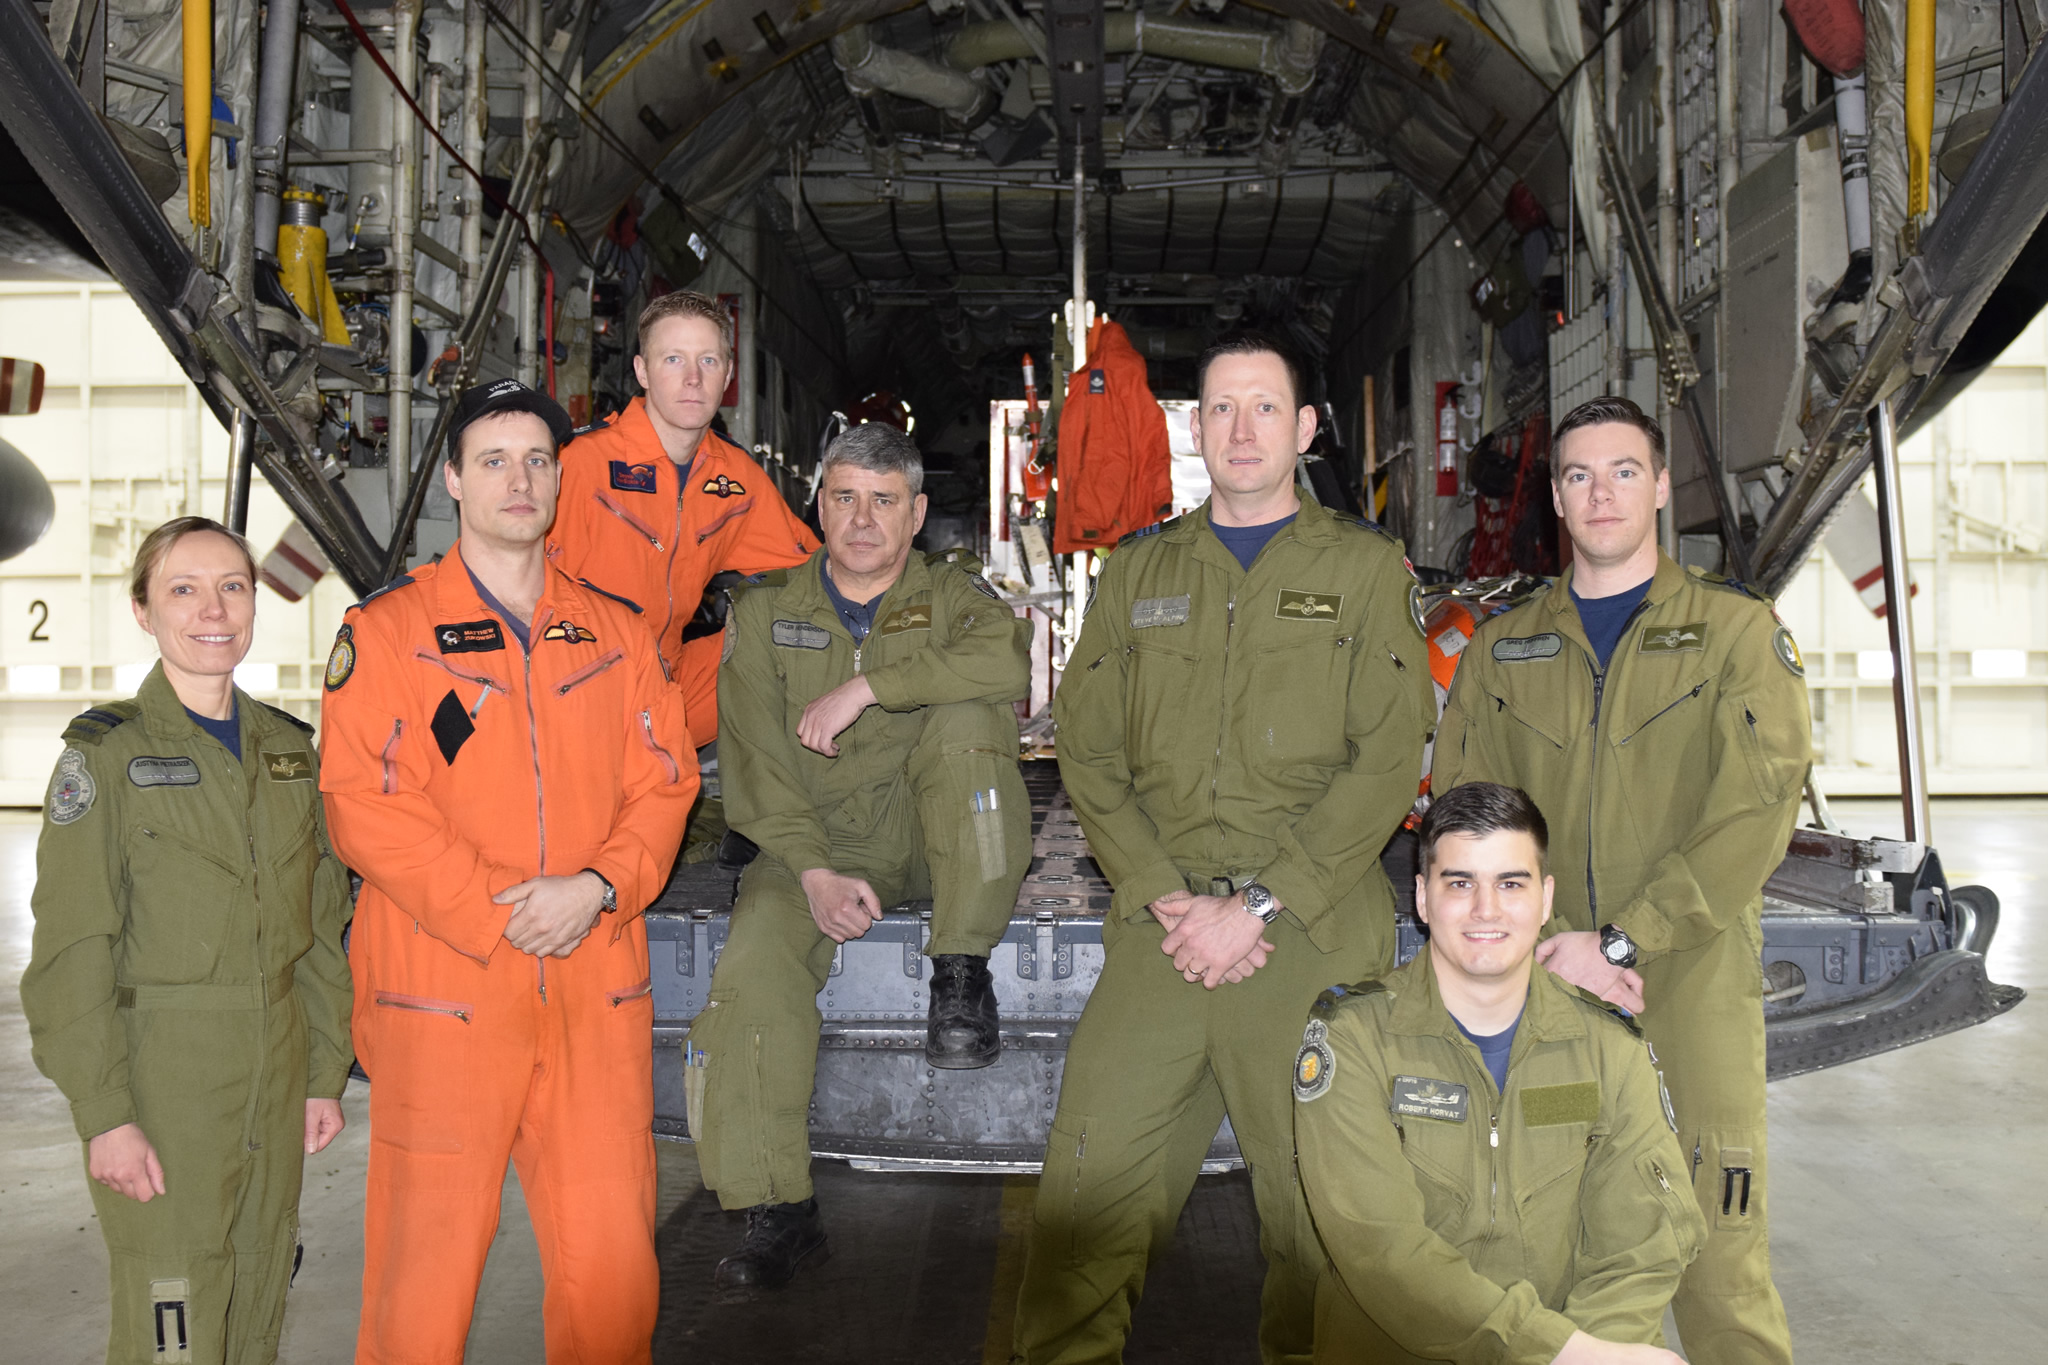 Baker Lake SAR crewmembers (L to R) Captain Justyna Pietraszek (ACSO), Master Corporal Matthew Zukowski (SAR Tech), Sergeant Dennis Van Sickle (SAR Tech), Master Corporal Tyler Henderson (Loadmaster), Major Steve McAlpine (Aircraft Commander), Second Lieutenant Robert Horvat (SAR Spotter), and Captain Greg Heffren (First Officer) pose on the rear ramp of a CC-130H Hercules at 424 Transport and Rescue Squadron at 8 Wing Trenton, 3 February, 2017. Missing from photo: Master Corporal Jason Tibbo, Flight Engineer.  (Photo credit: 8 Wing Public Affairs ©2017 DND-MDN Canada)